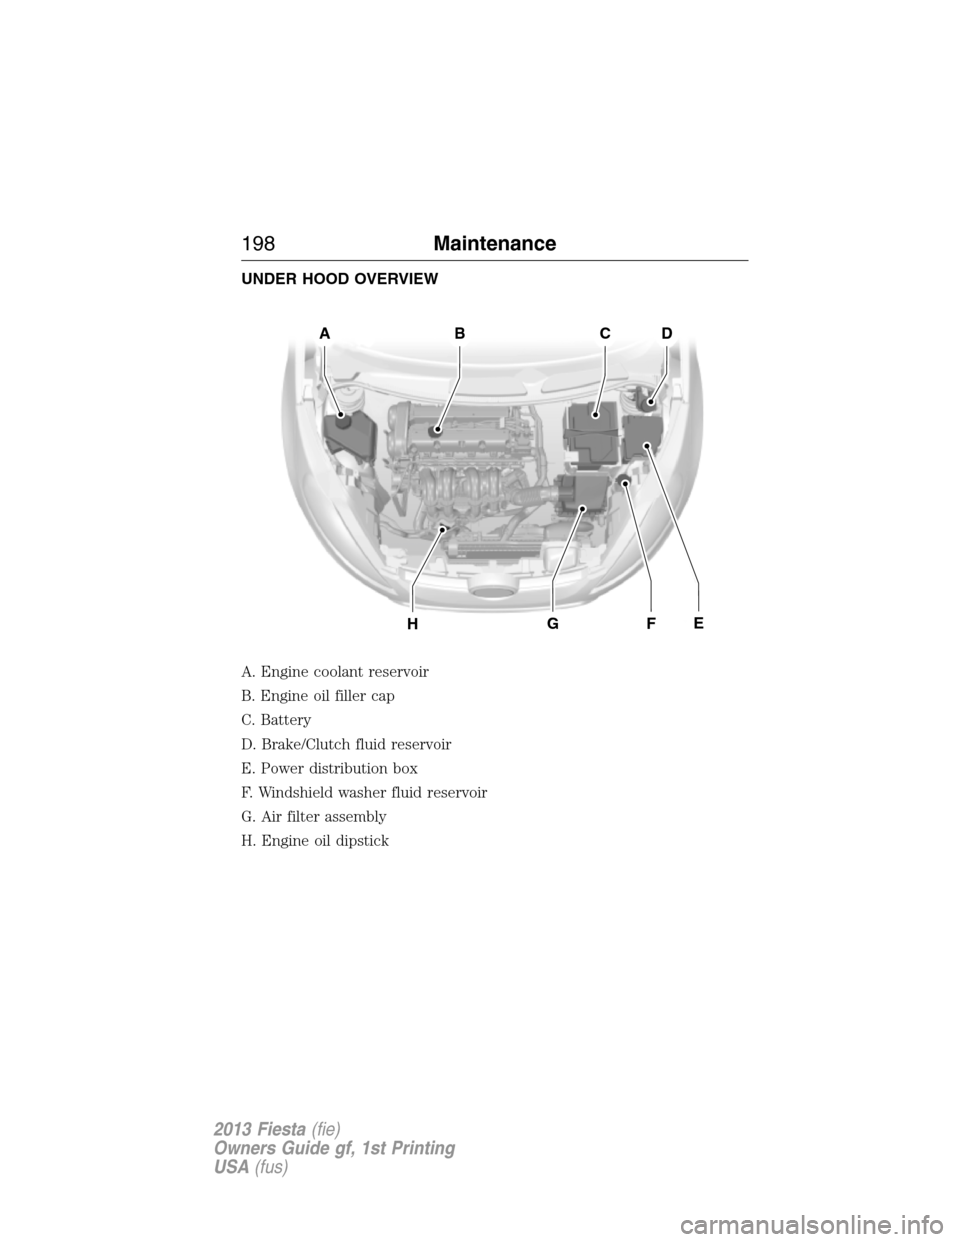 Oil Filter Ford Fiesta 2013 7g Owners Manual Engine Diagram Page 198